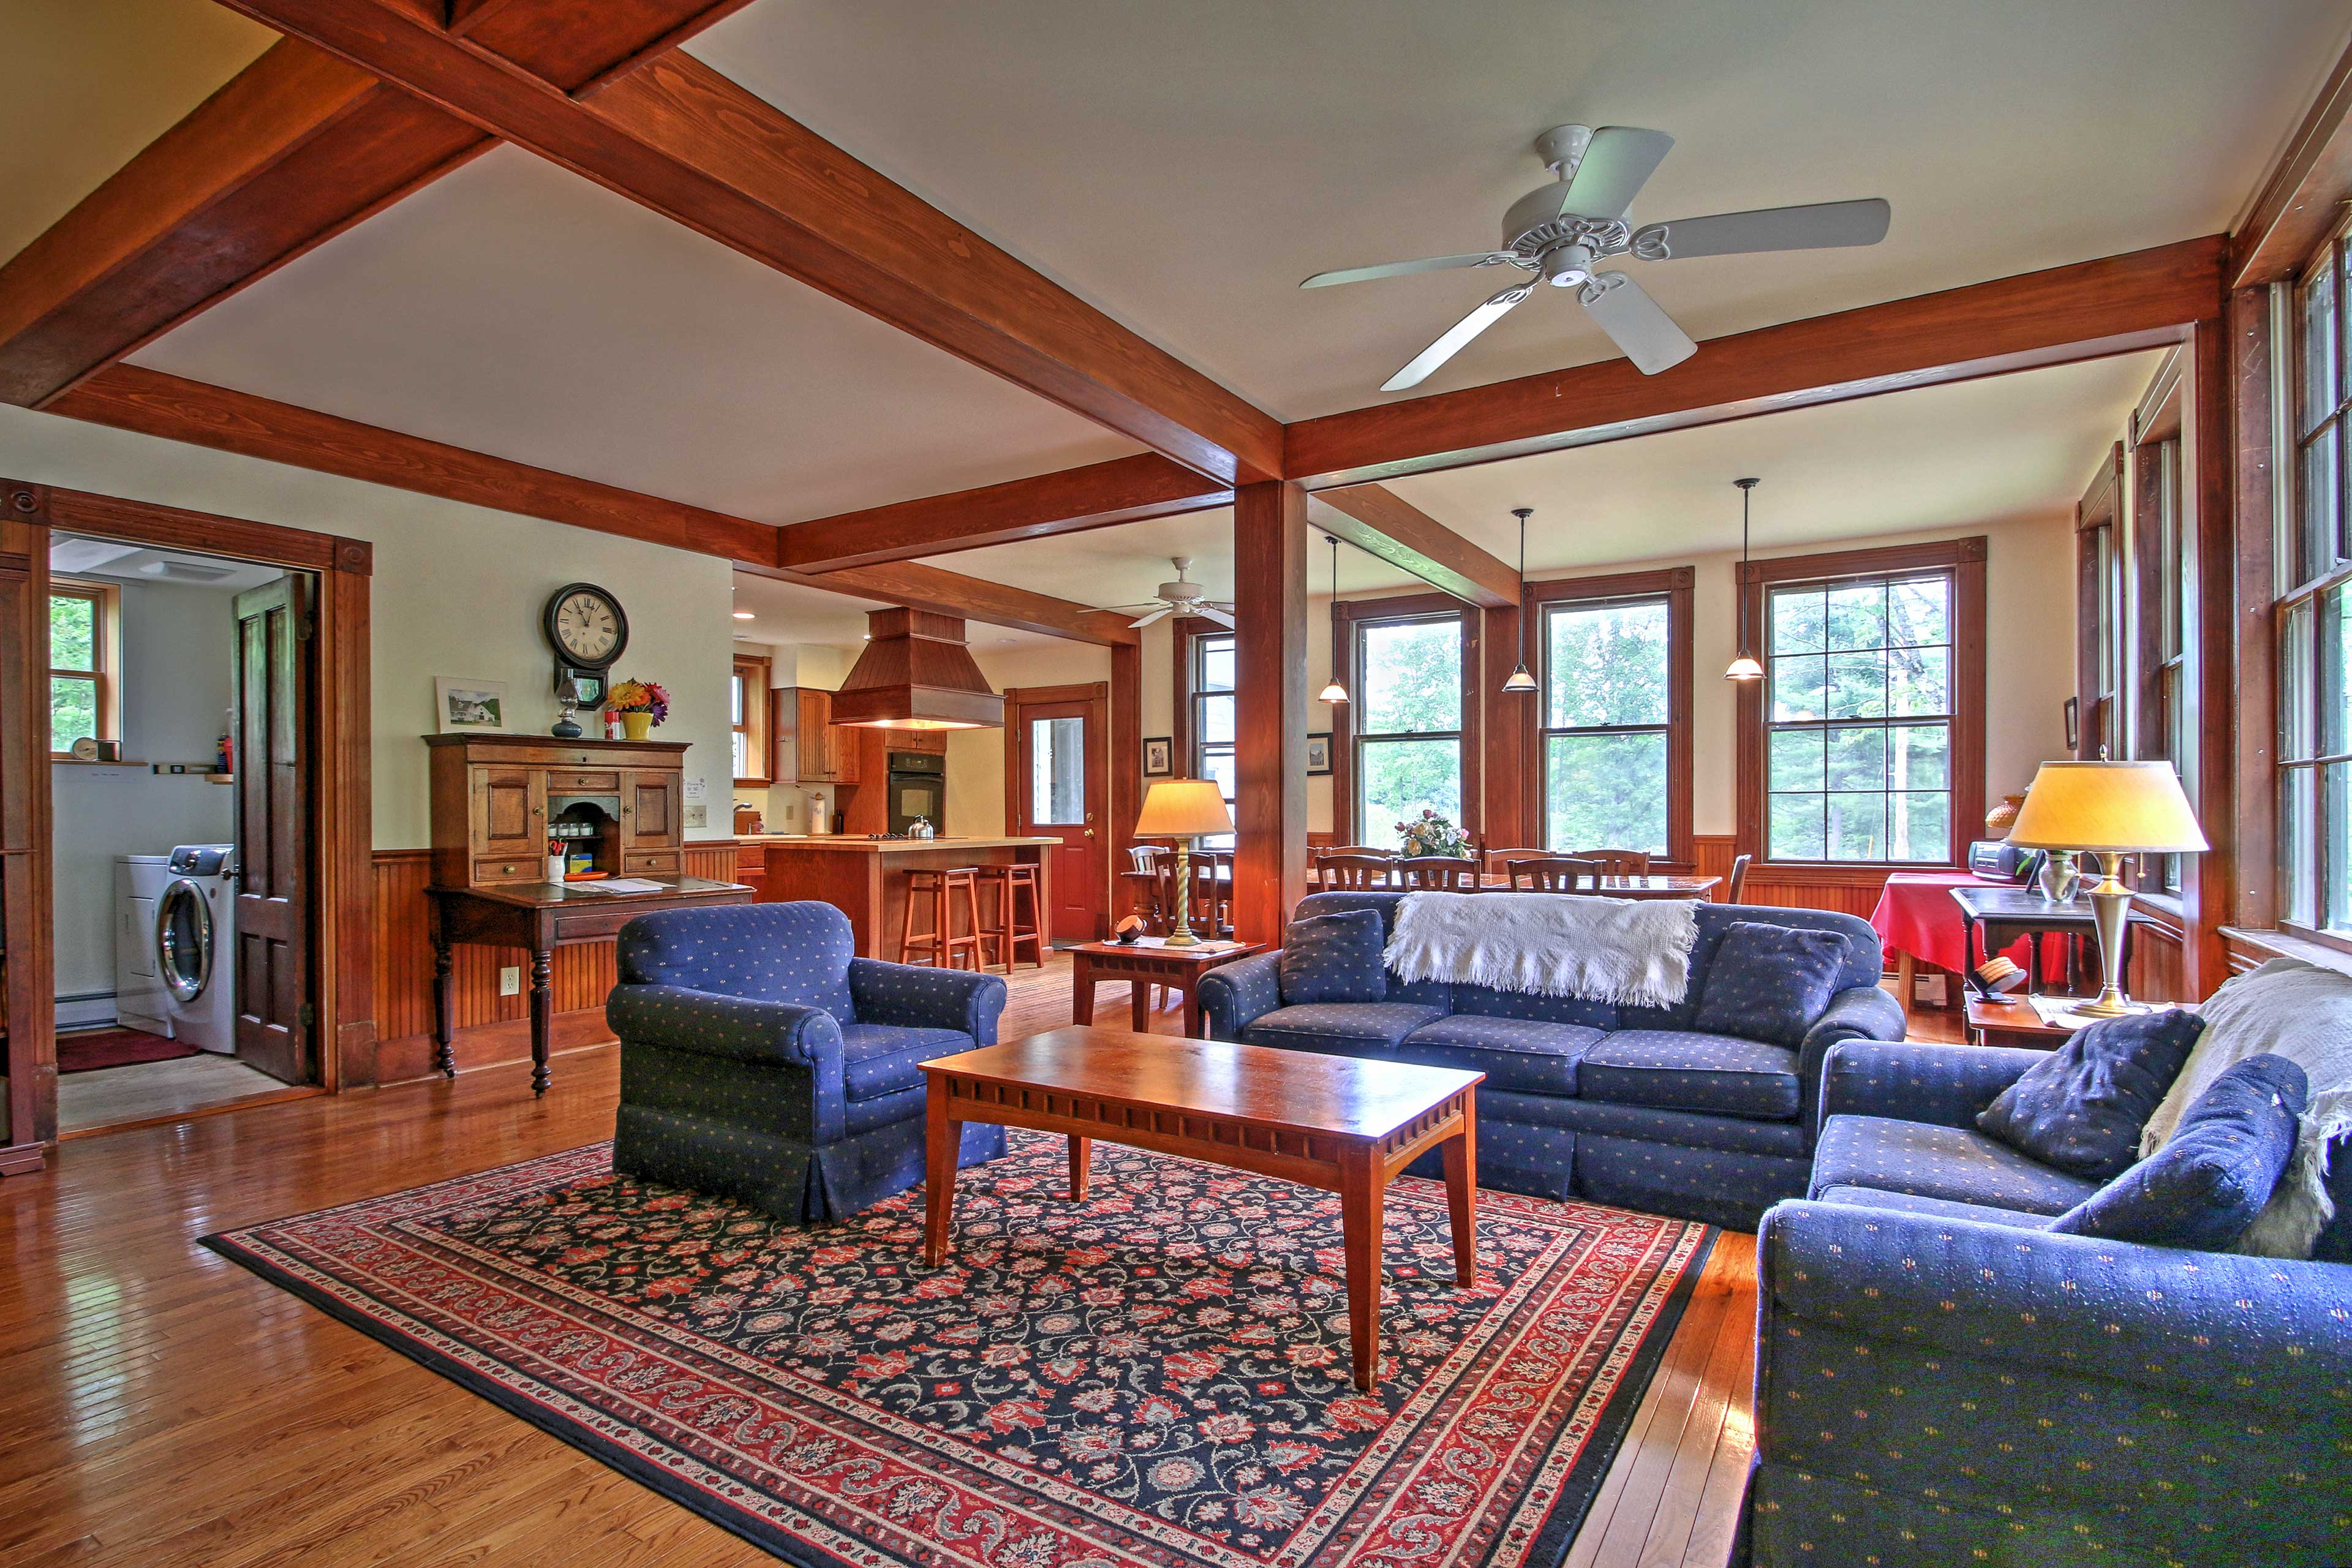 There's ample room to relax in the living area.